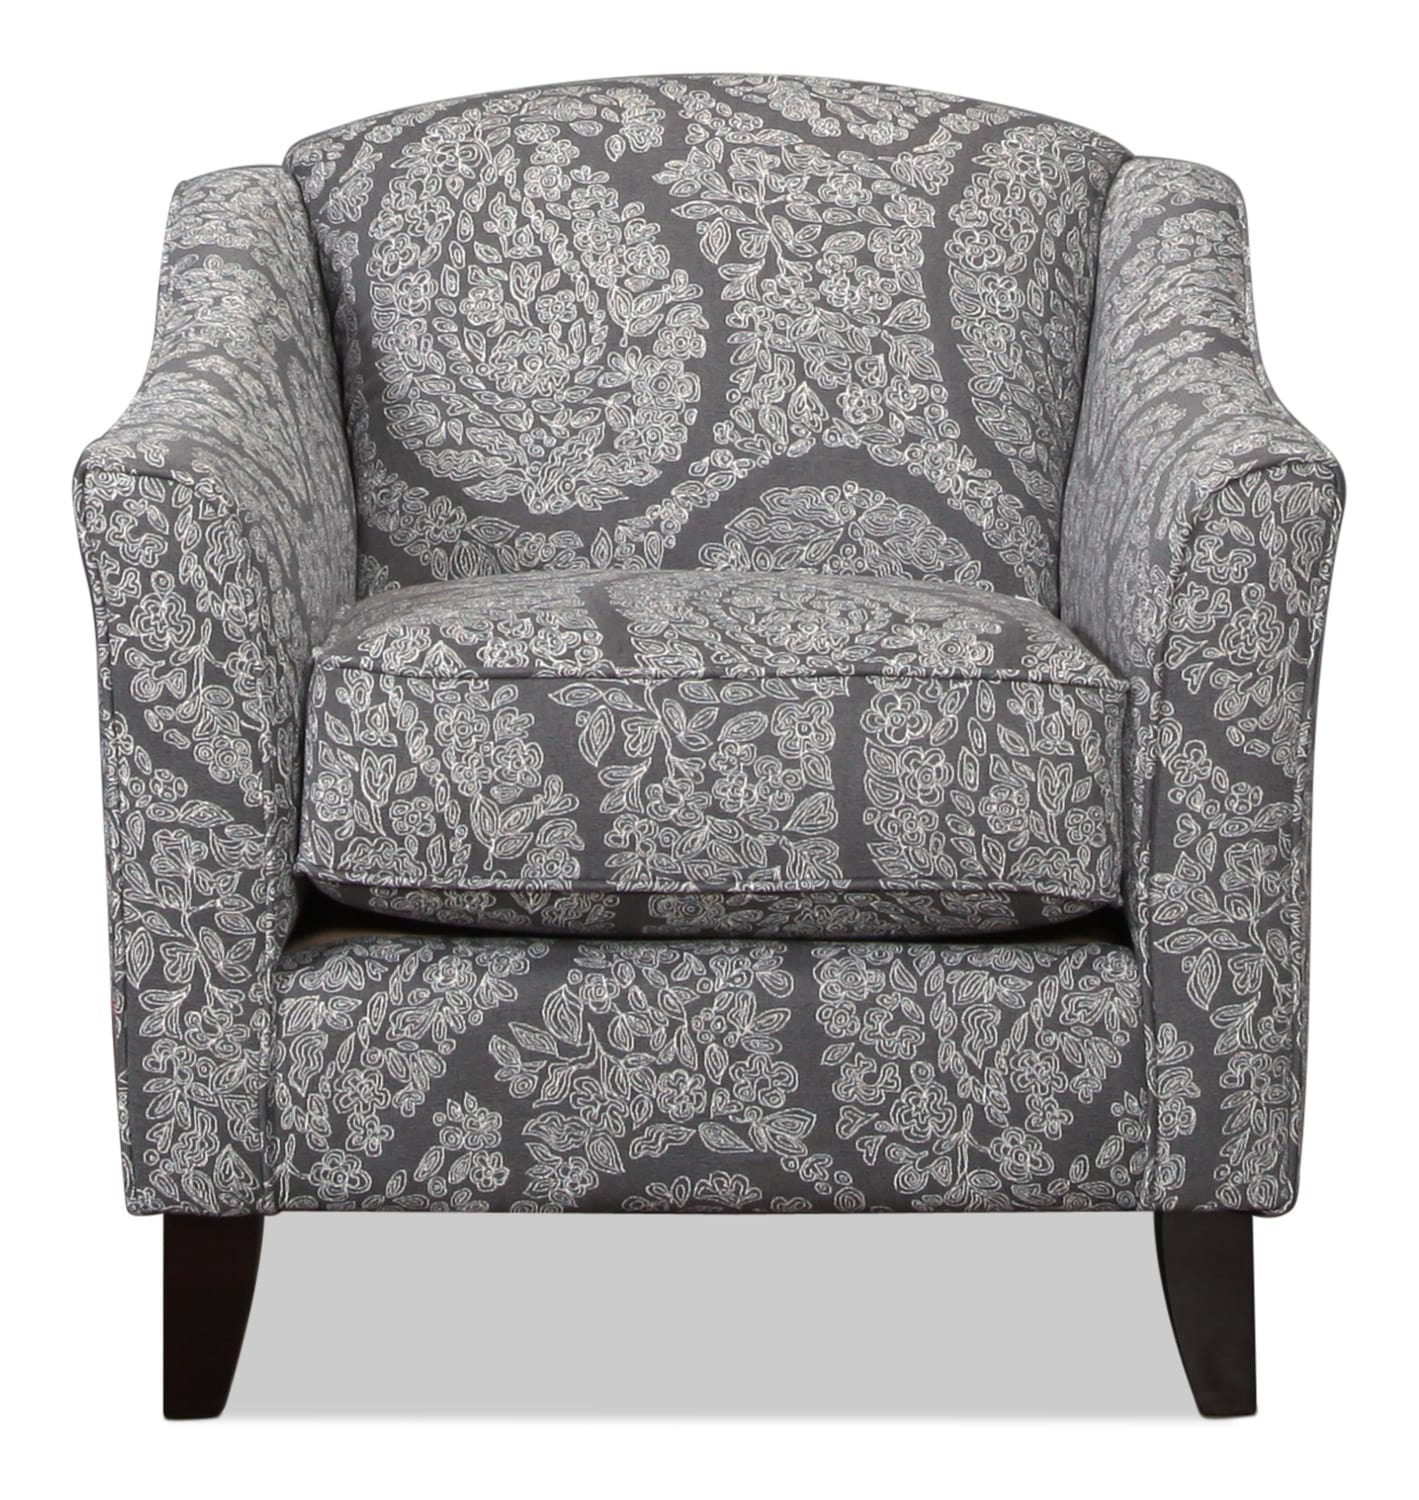 Wilmington Accent Chair - Paisley